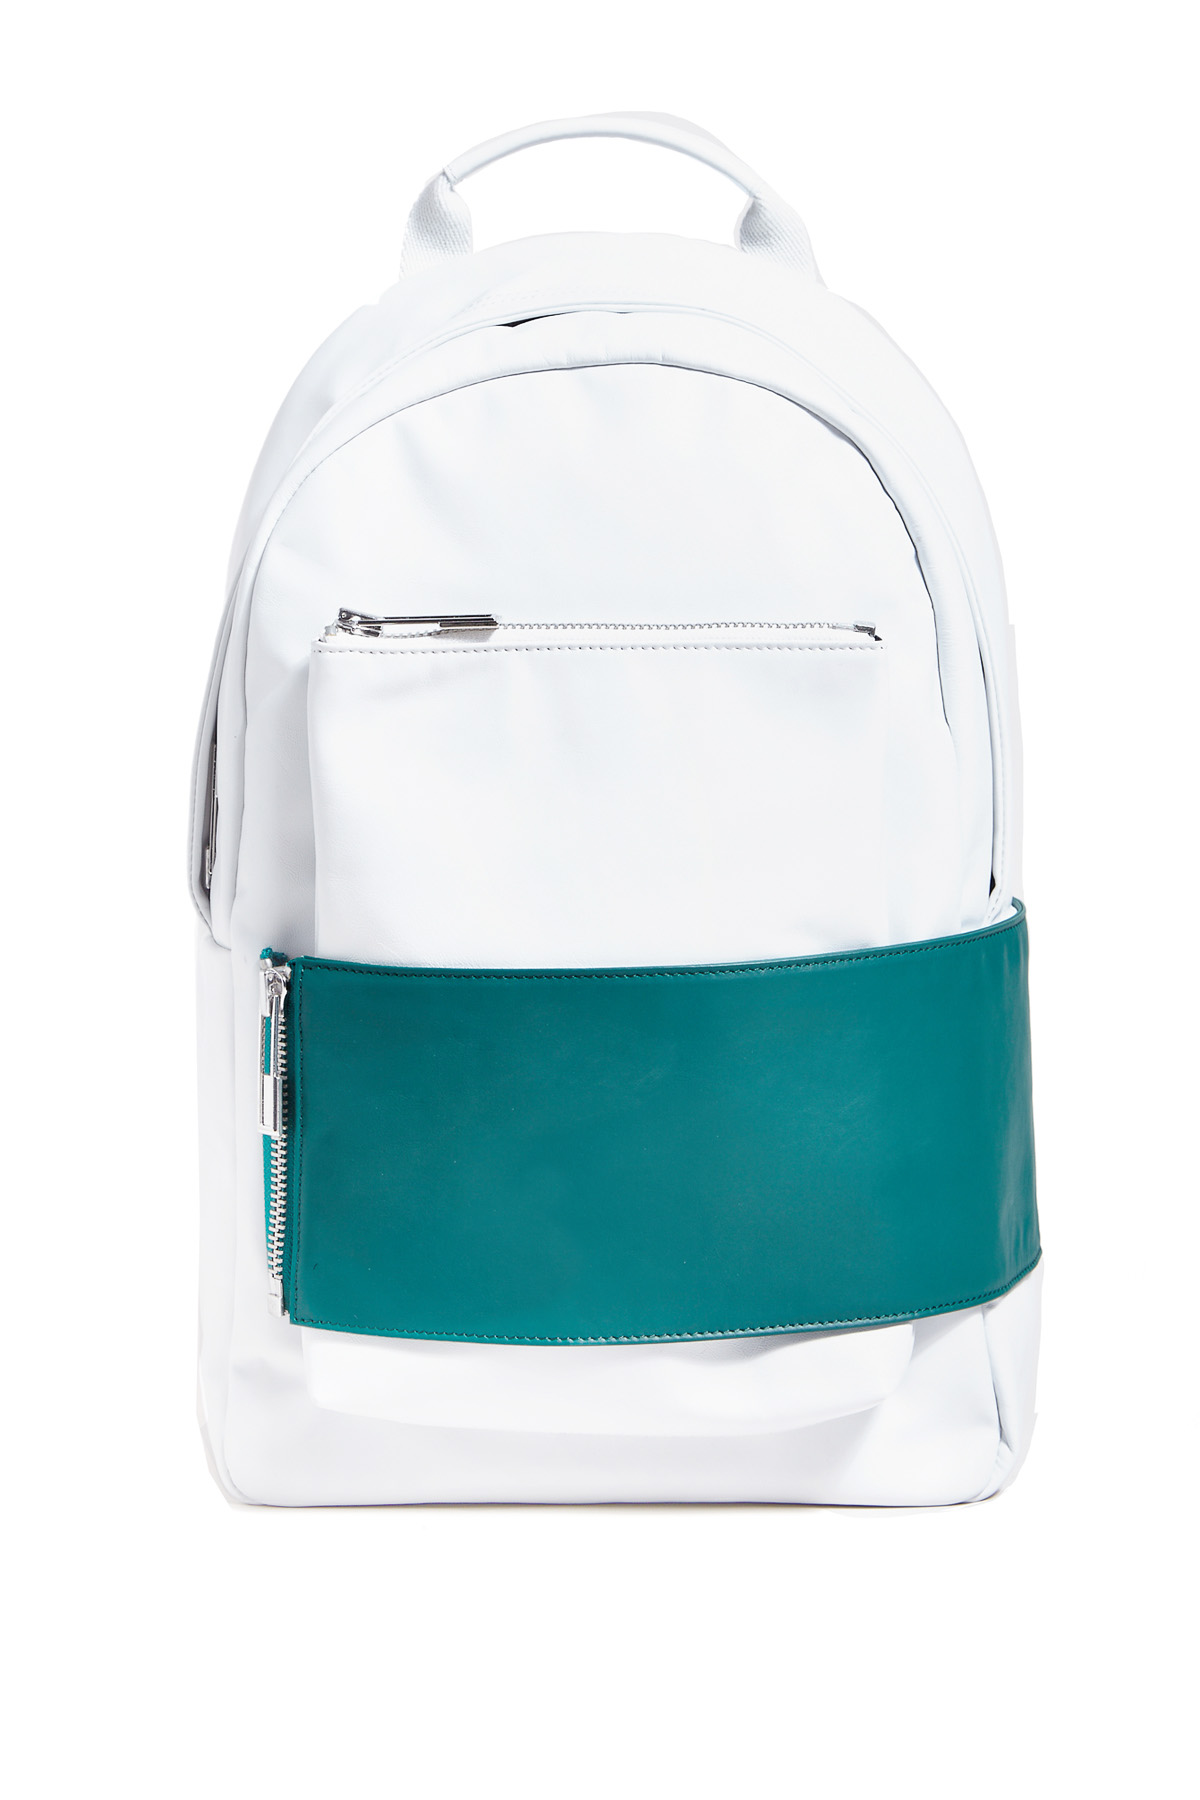 EASTPAK X NICOMEDE TALAVERA UNTITLED 0110 LEATHER BACKPACK - WOMEN - EASTPAK X NICOMEDE TALAVERA